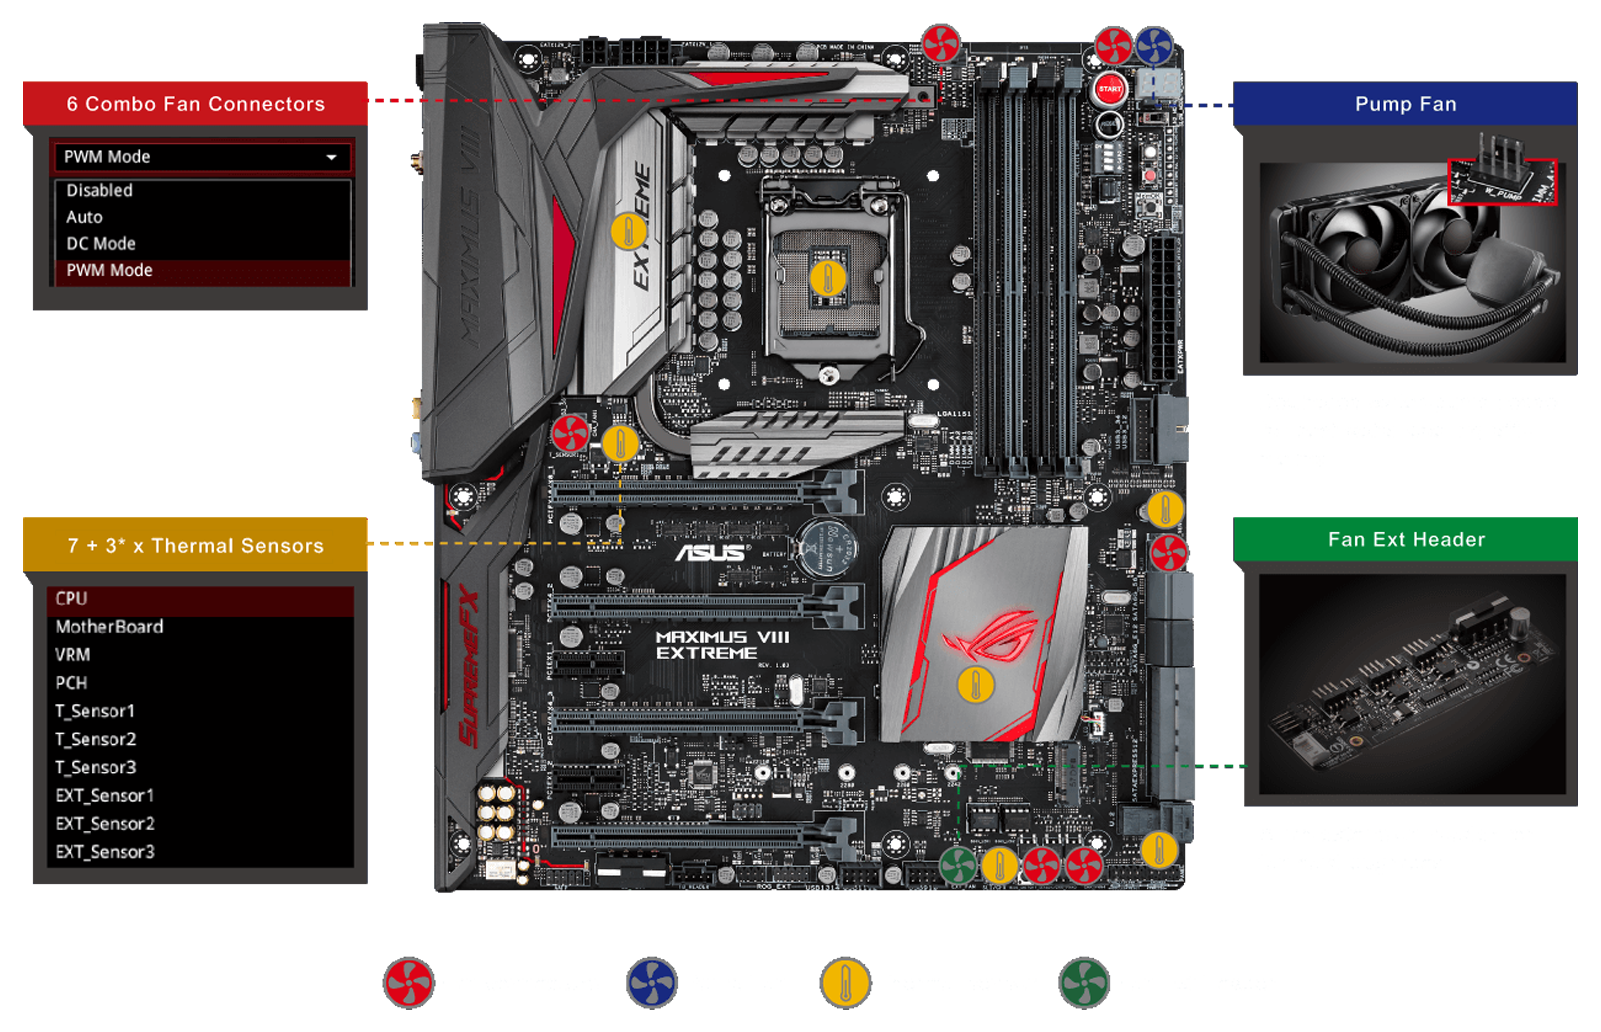 ASUS ROG Maximus VIII Extreme Intel LAN Drivers for Windows 7